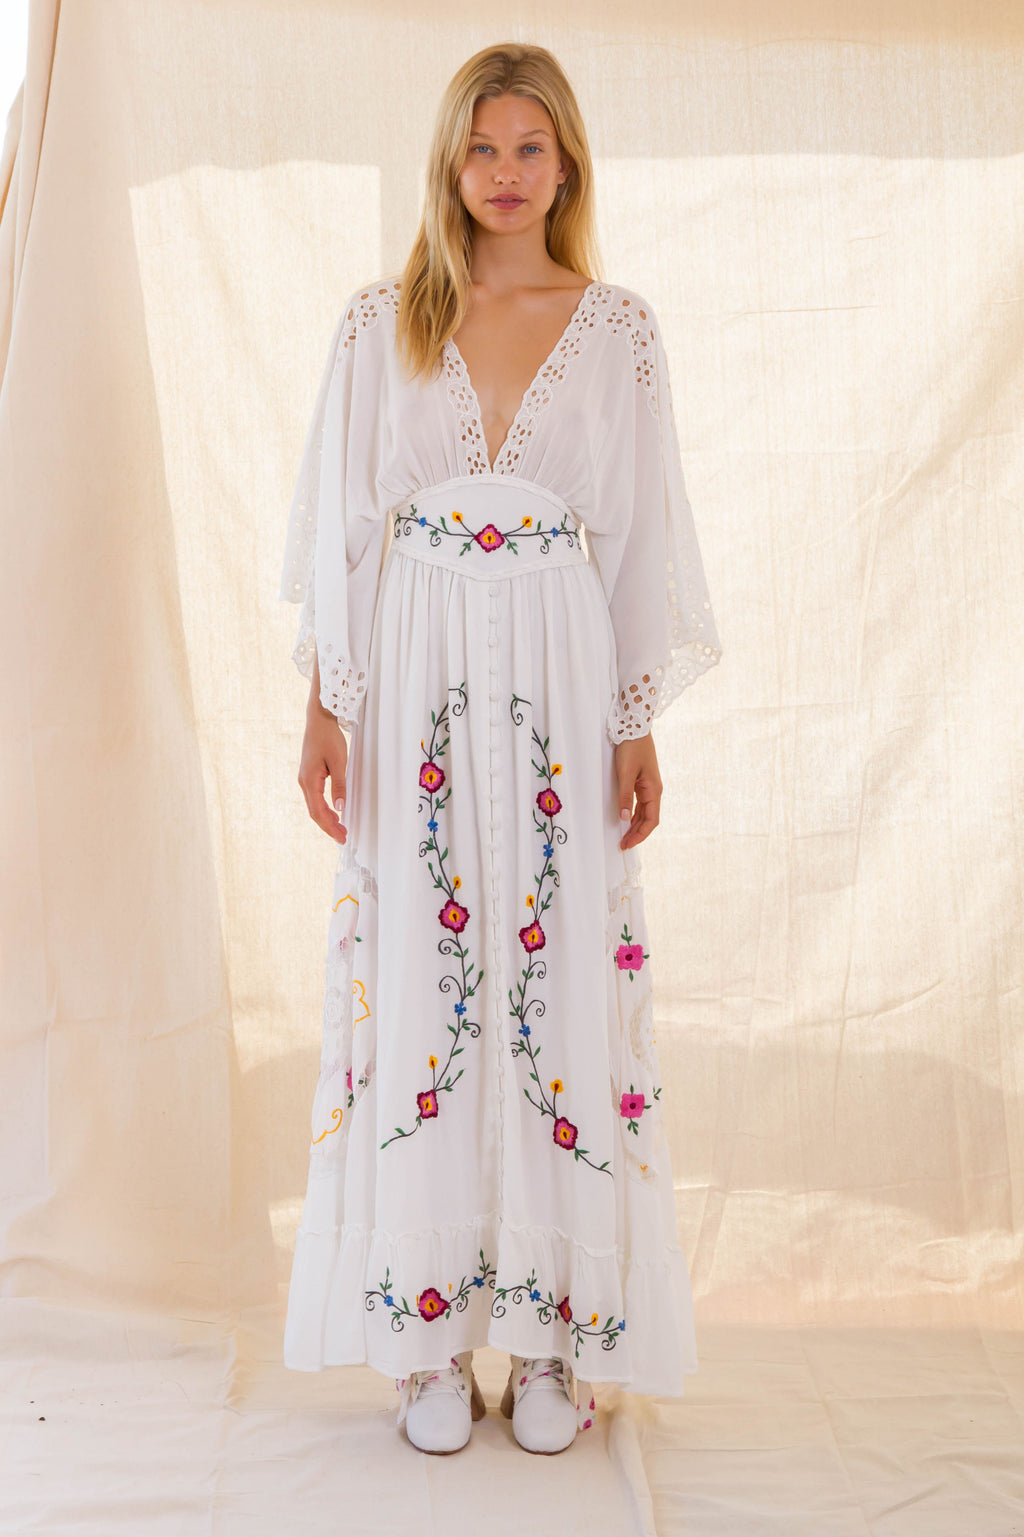 FILLYBOO - 'LOVE NOTE' KIMONO MAXI DRESS - IVORY